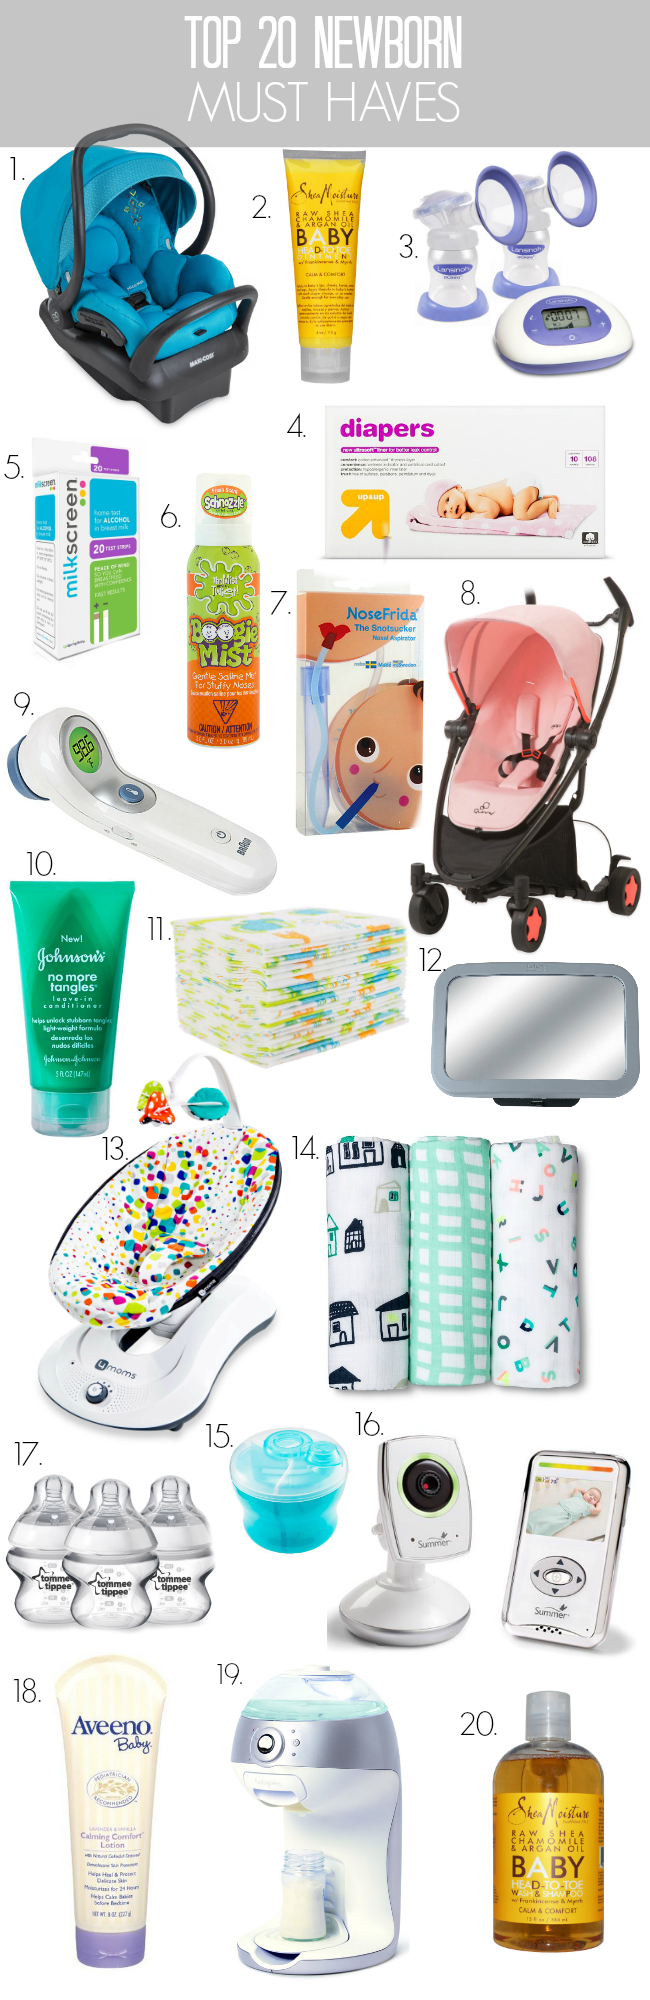 Top 20 Newborn Must Haves Baby Shopaholic Baby List Baby Must Haves Baby Items